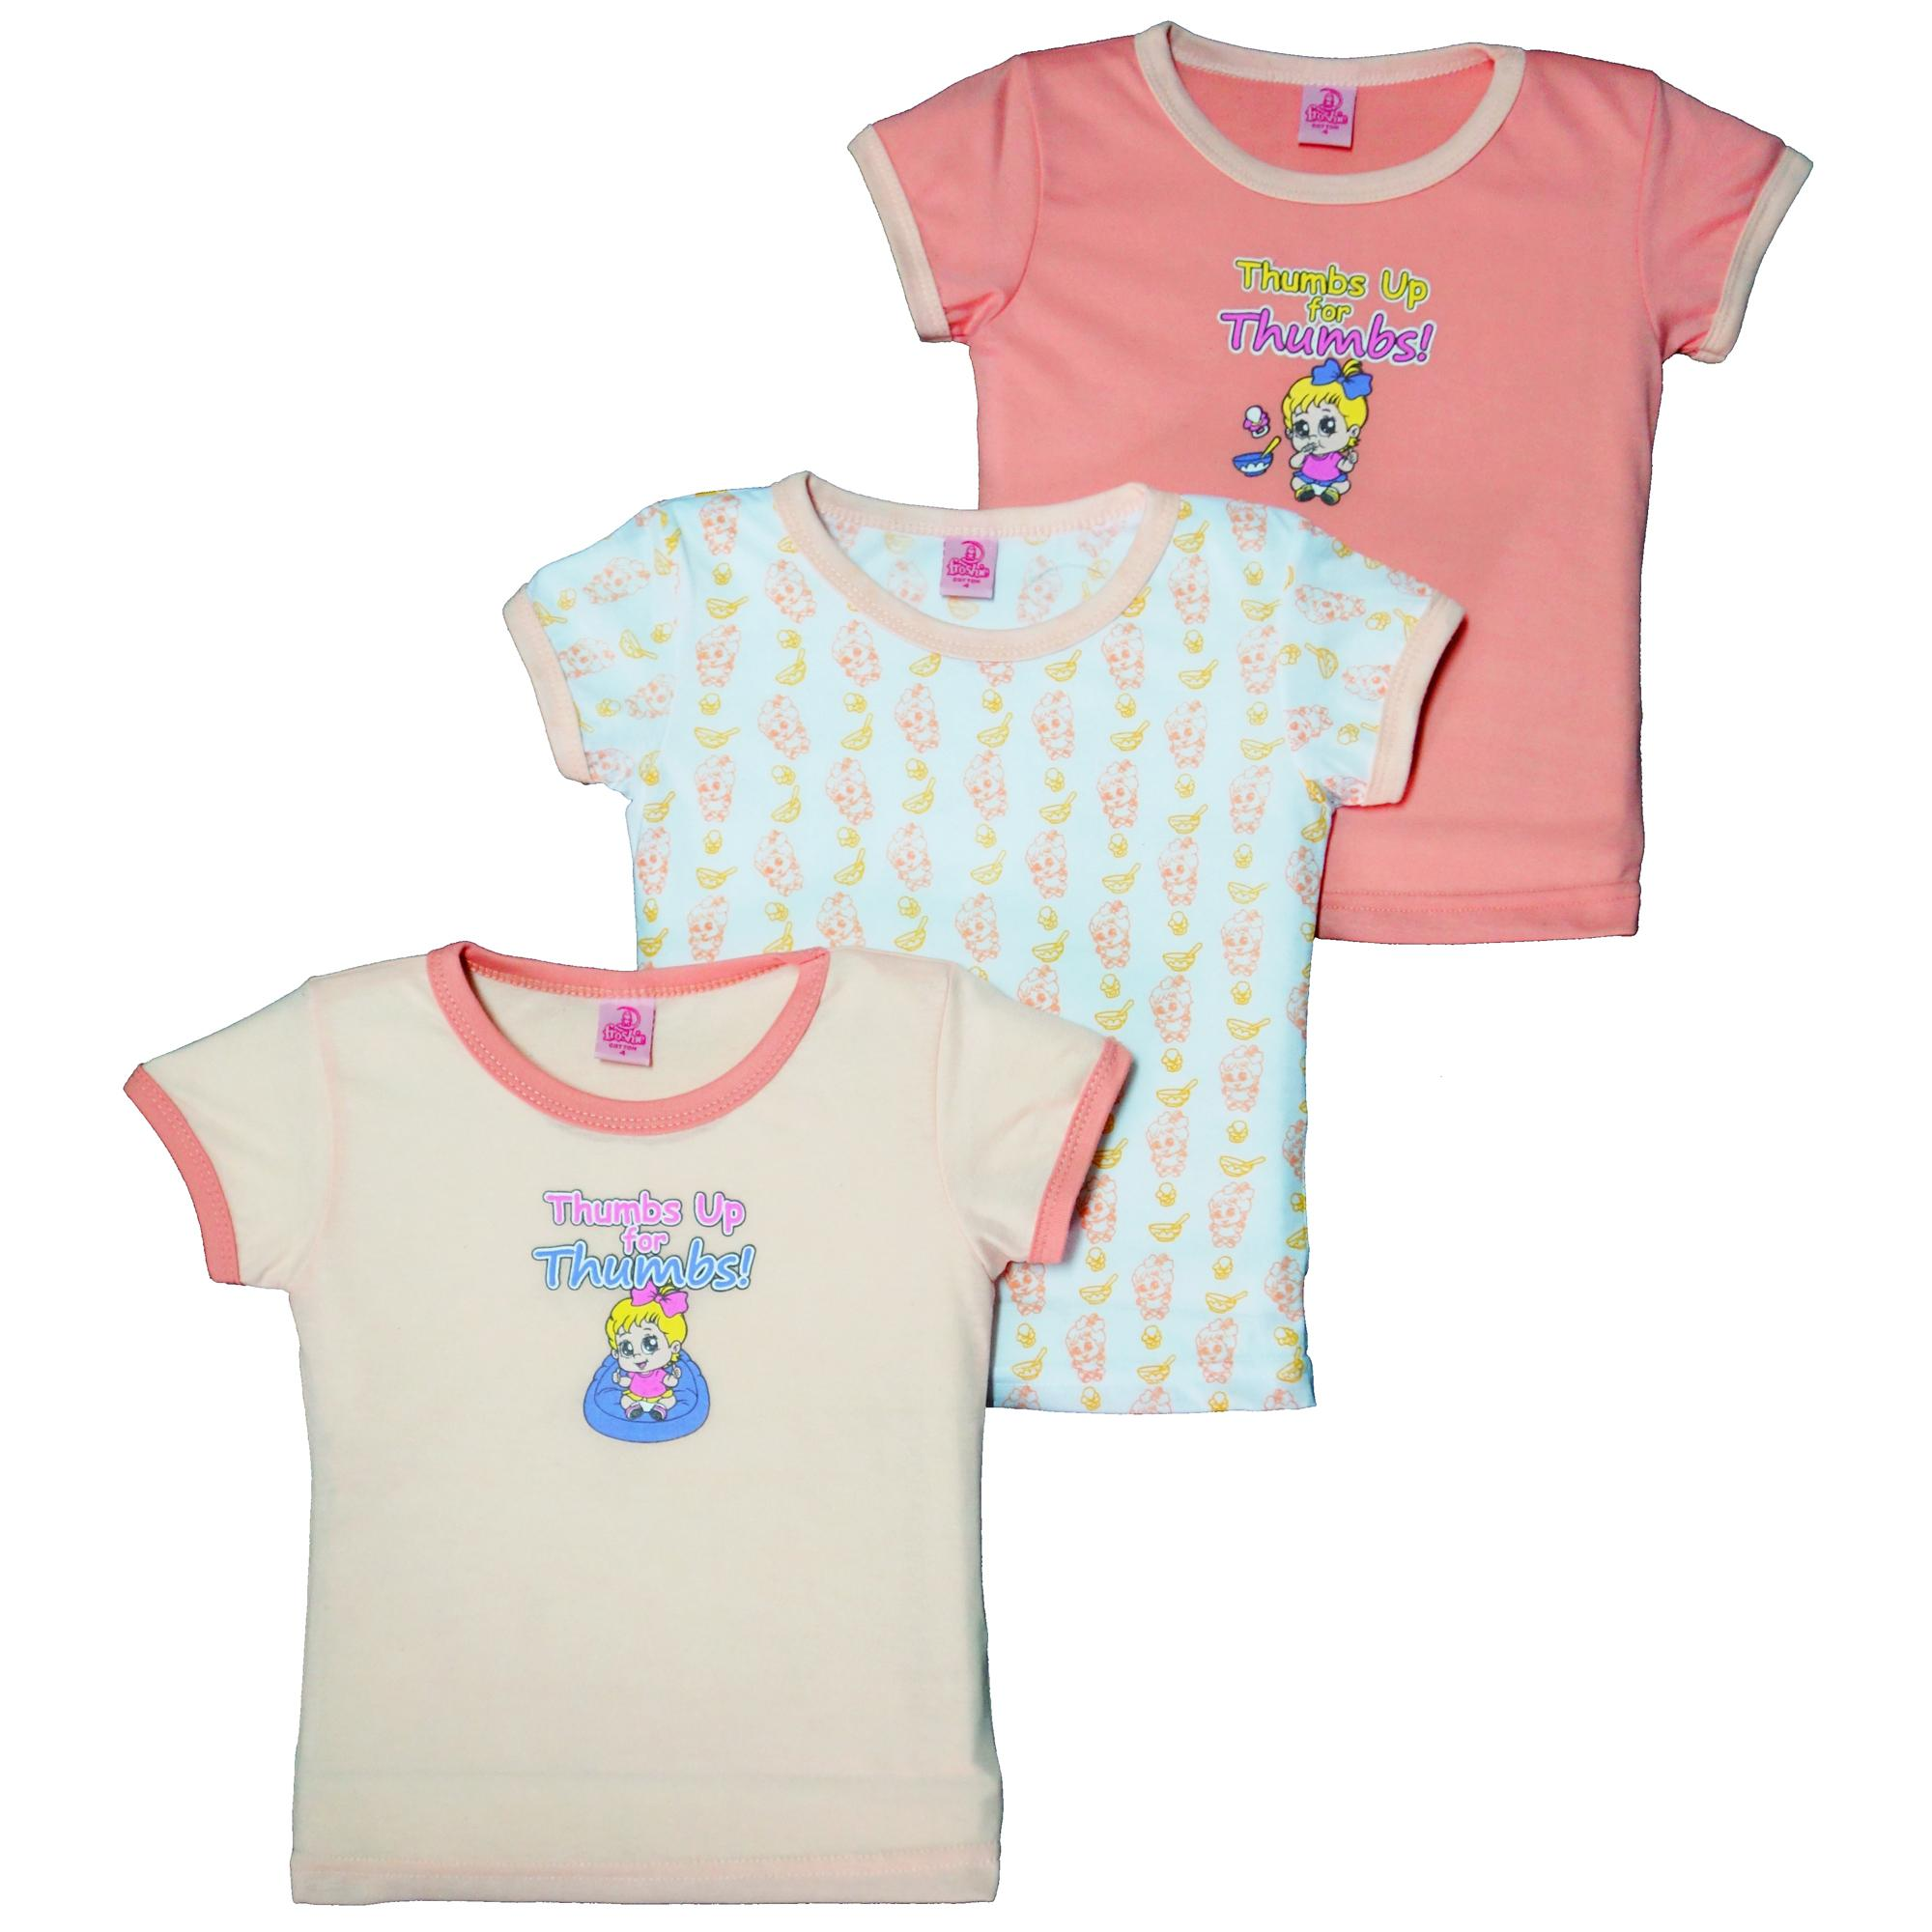 57bf11818 Girls Top Tees for sale - Shirts for Baby Girls online brands ...